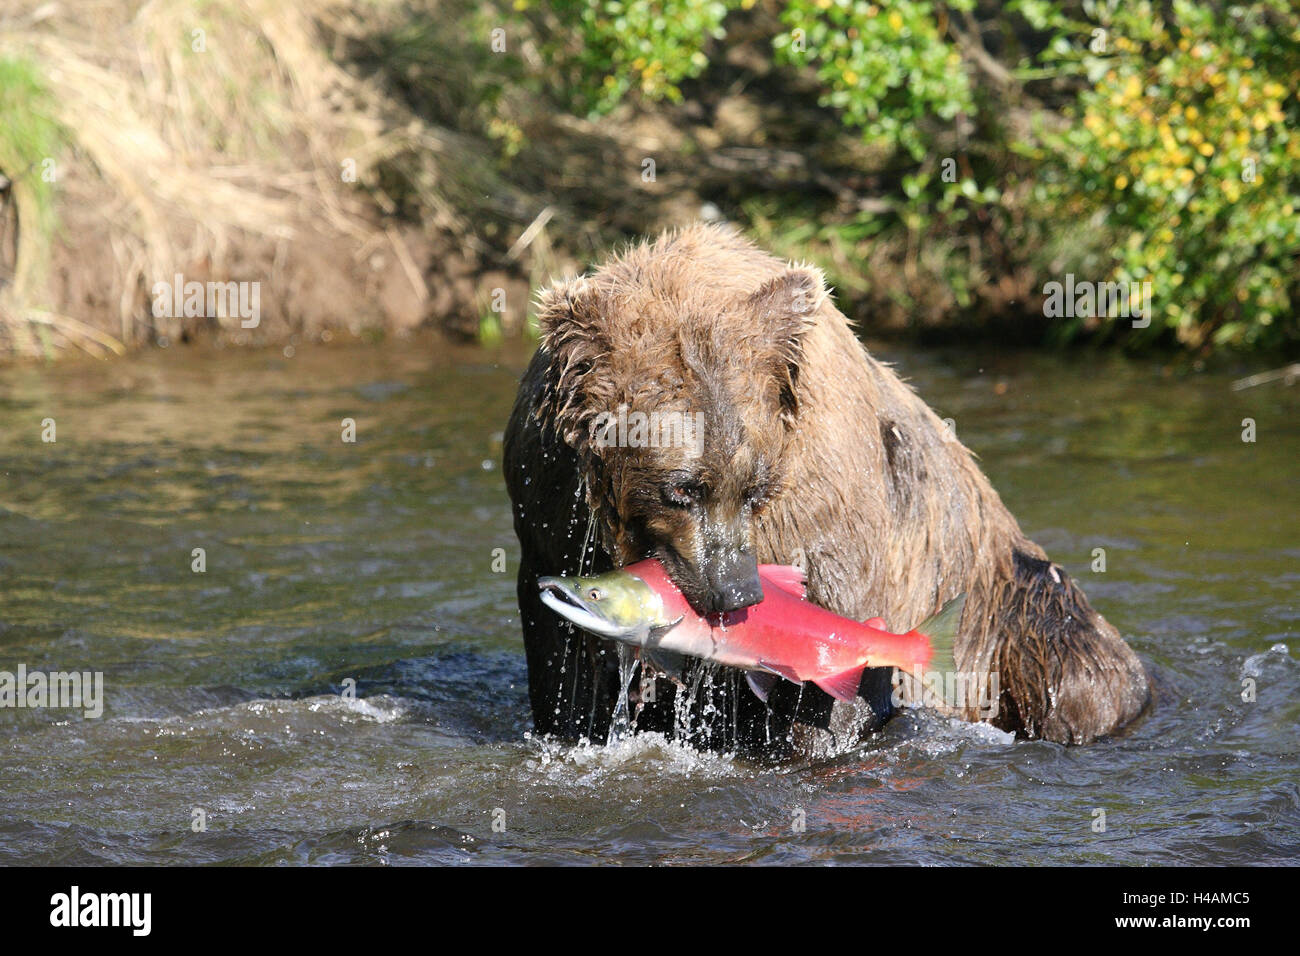 Grizzly, salmon, mouth, - Stock Image